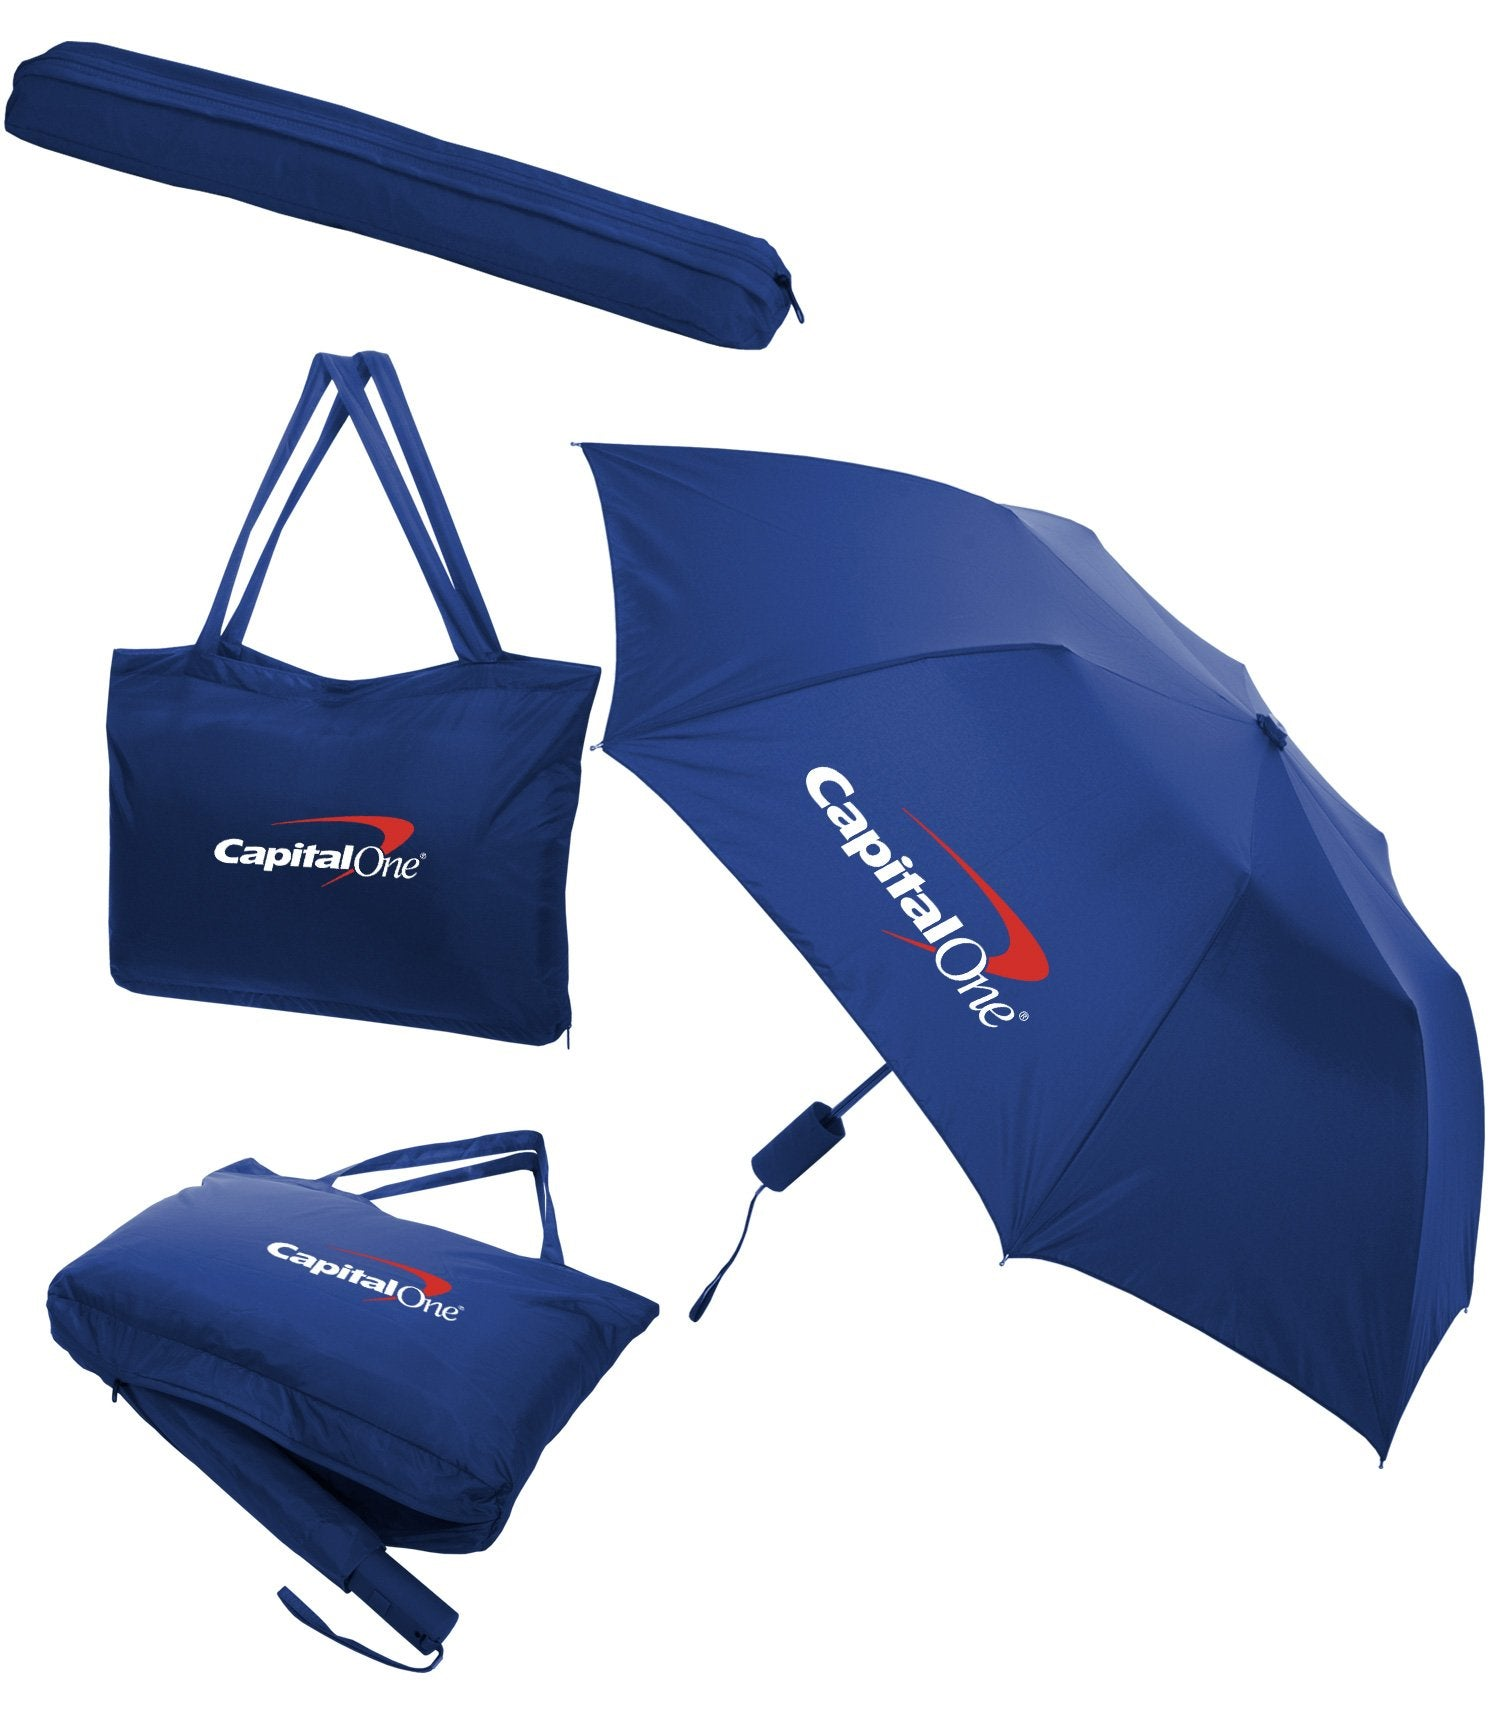 promo umbrella set - navy